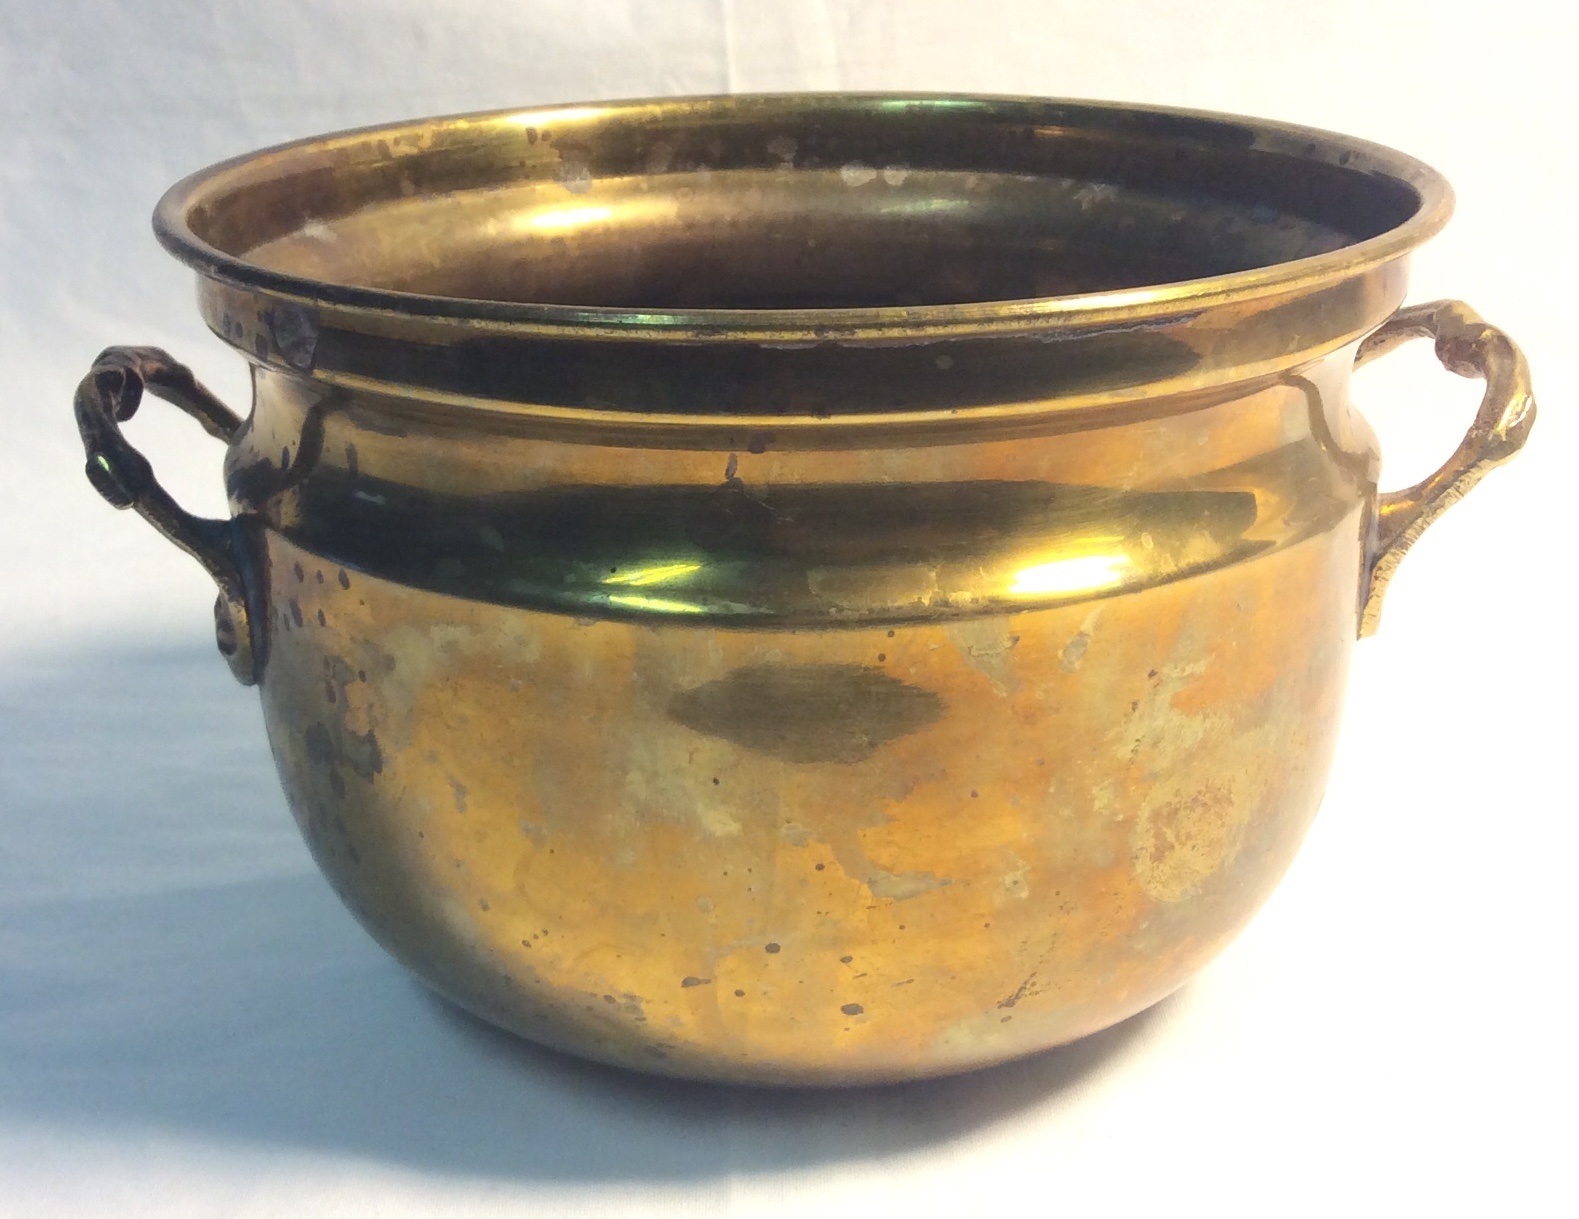 Brass Pot, medium with 2 handles